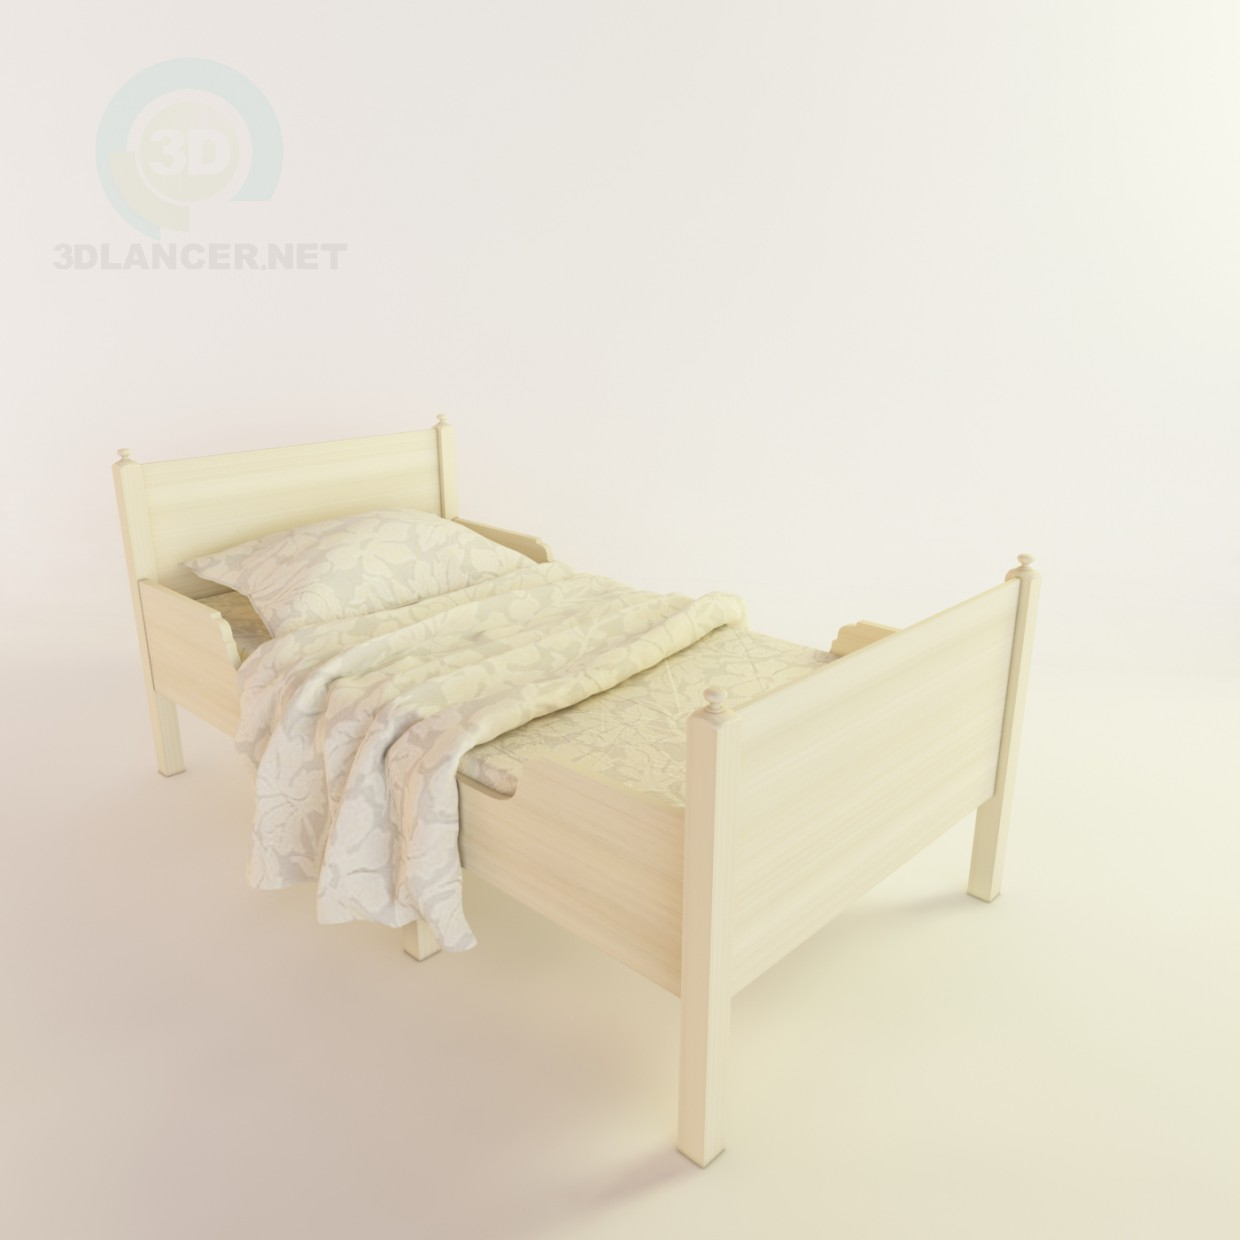 3d modeling child's bed (ikea) model free download